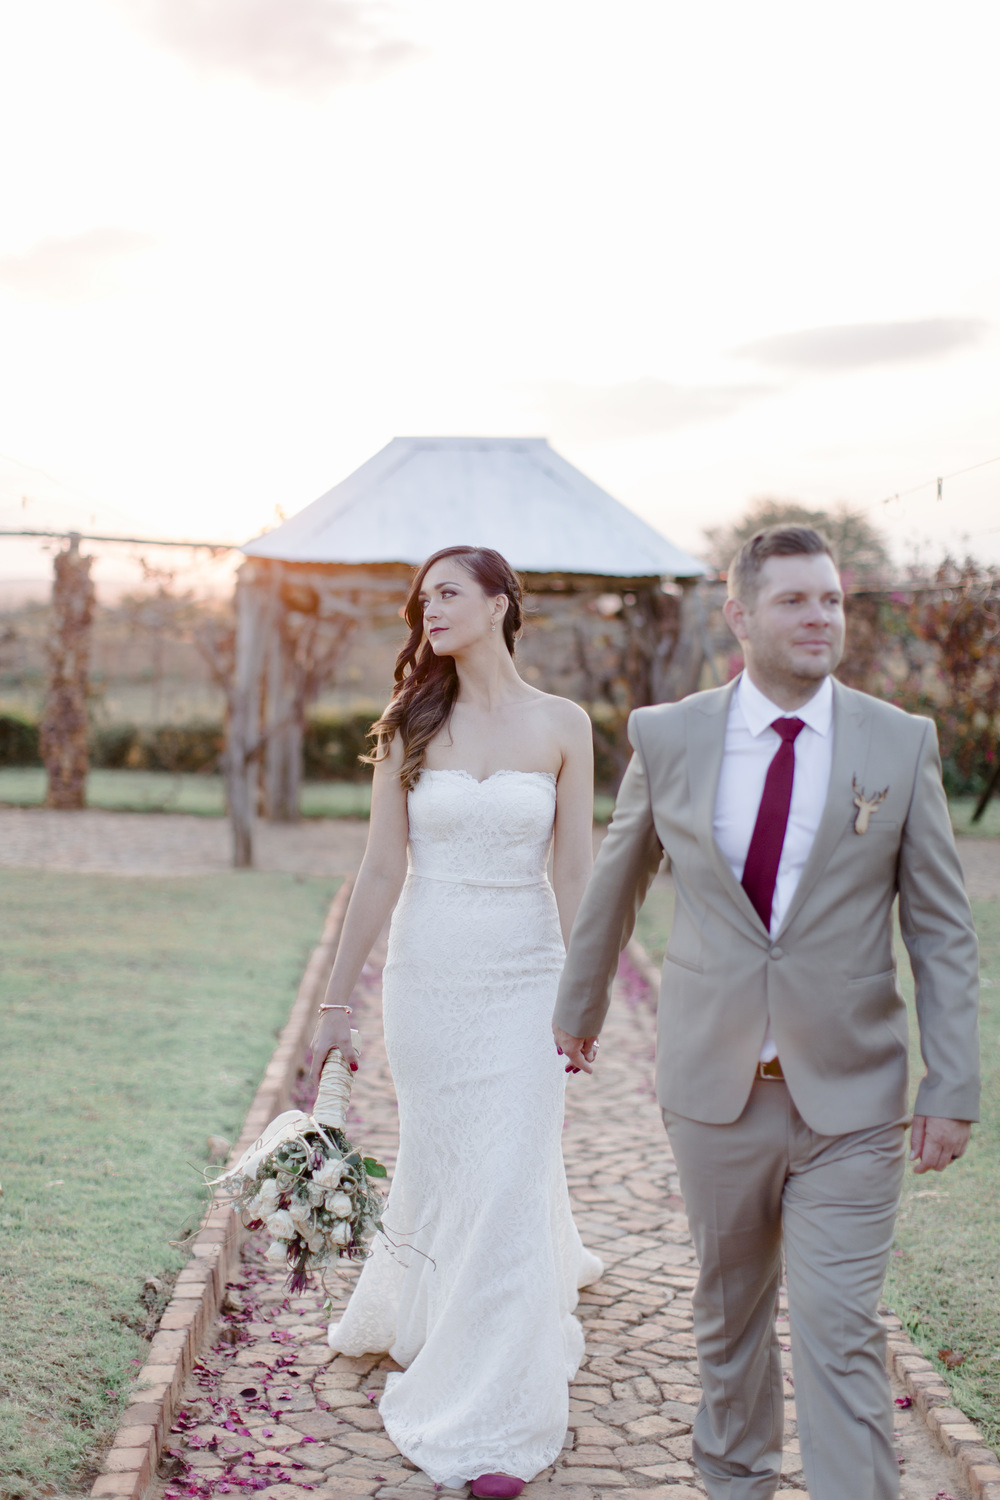 Bell Amour wedding venue Gauteng photographer_067.jpg